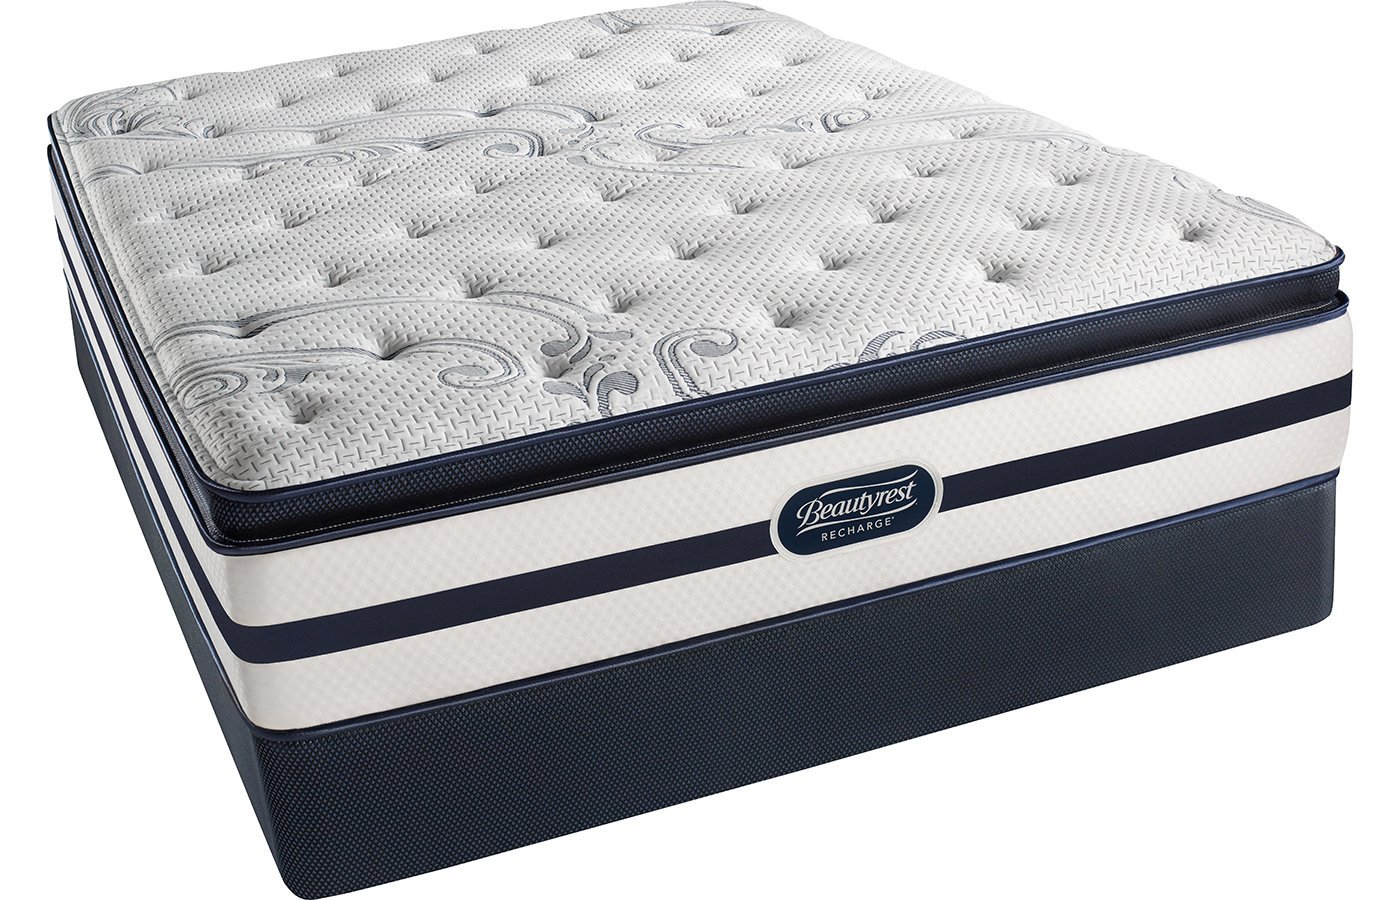 Beautyrest Recharge Simmons Plush Pillow Top King Mattress Pocketed Coil Gel Memory Foam